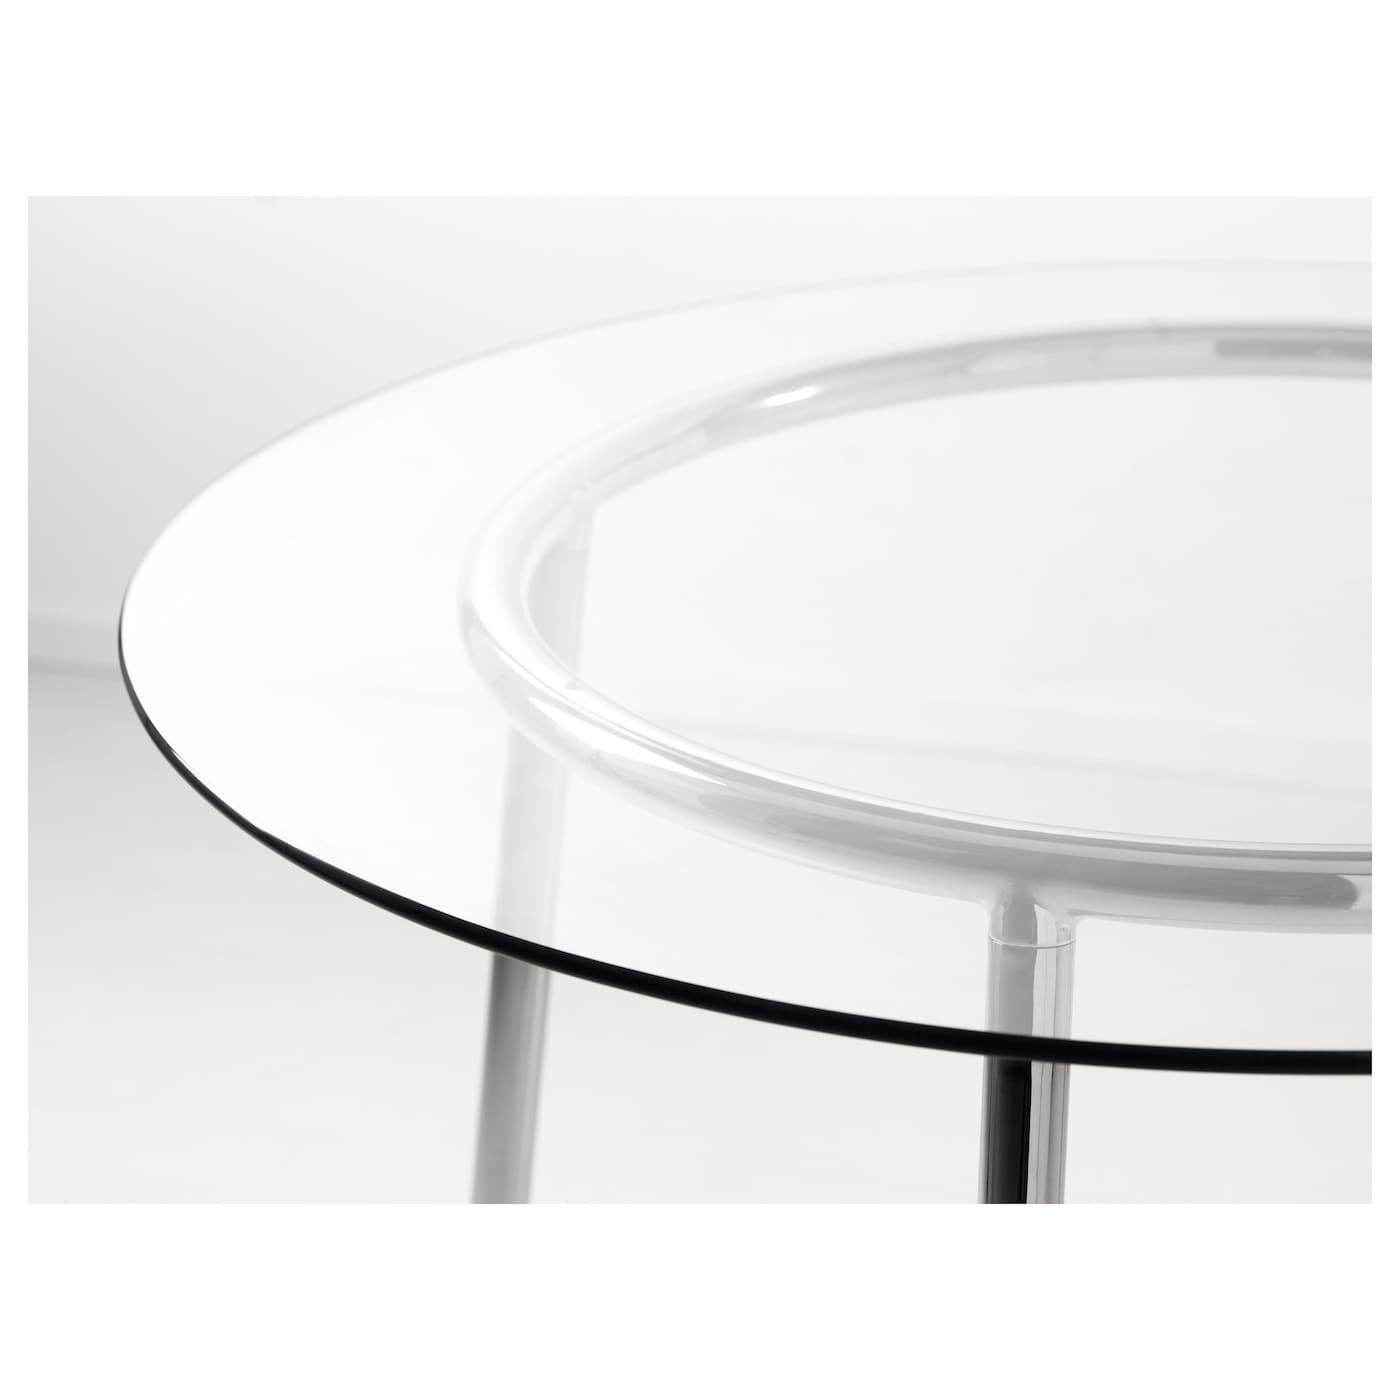 SALMI Table Glass/chrome Plated 105 Cm IKEA #161618 2000 2000 Ikea Tavoli Di Legno